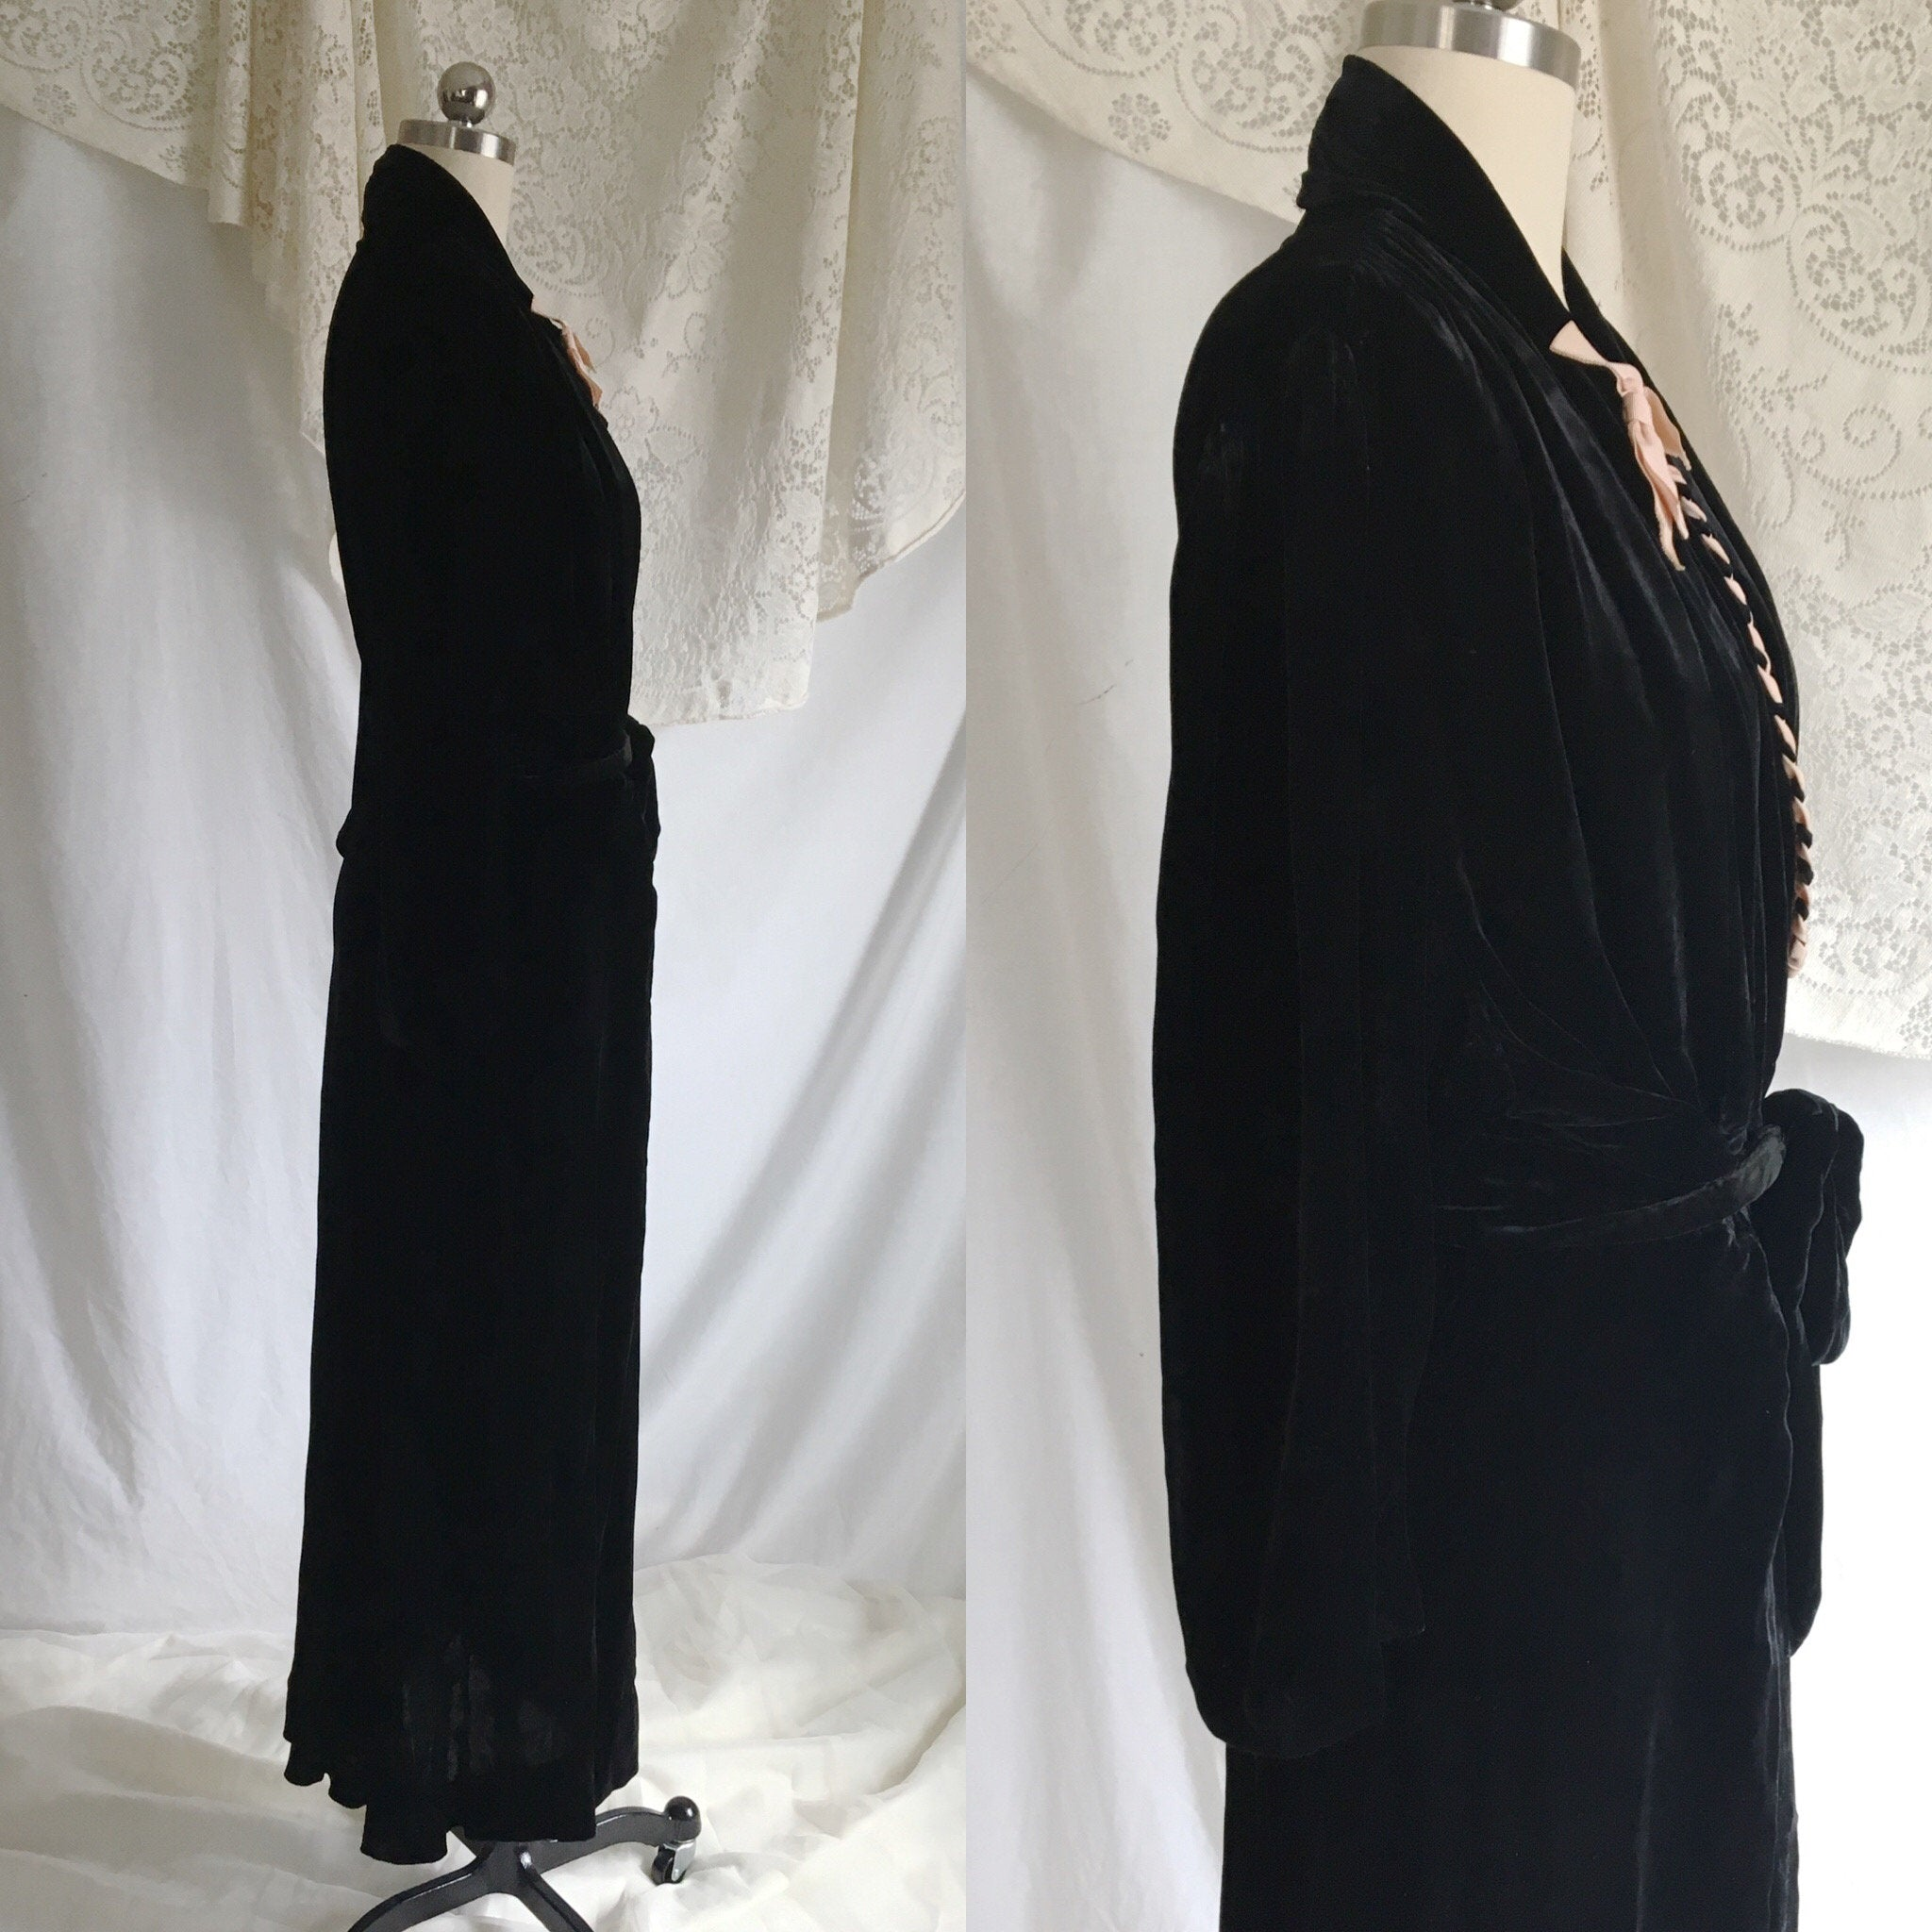 Vintage 1940's Dressing Gown | Black Silk Velvet with Powder Pink Ribbon | Bias Cut Step In Robe | Size S, M, LG